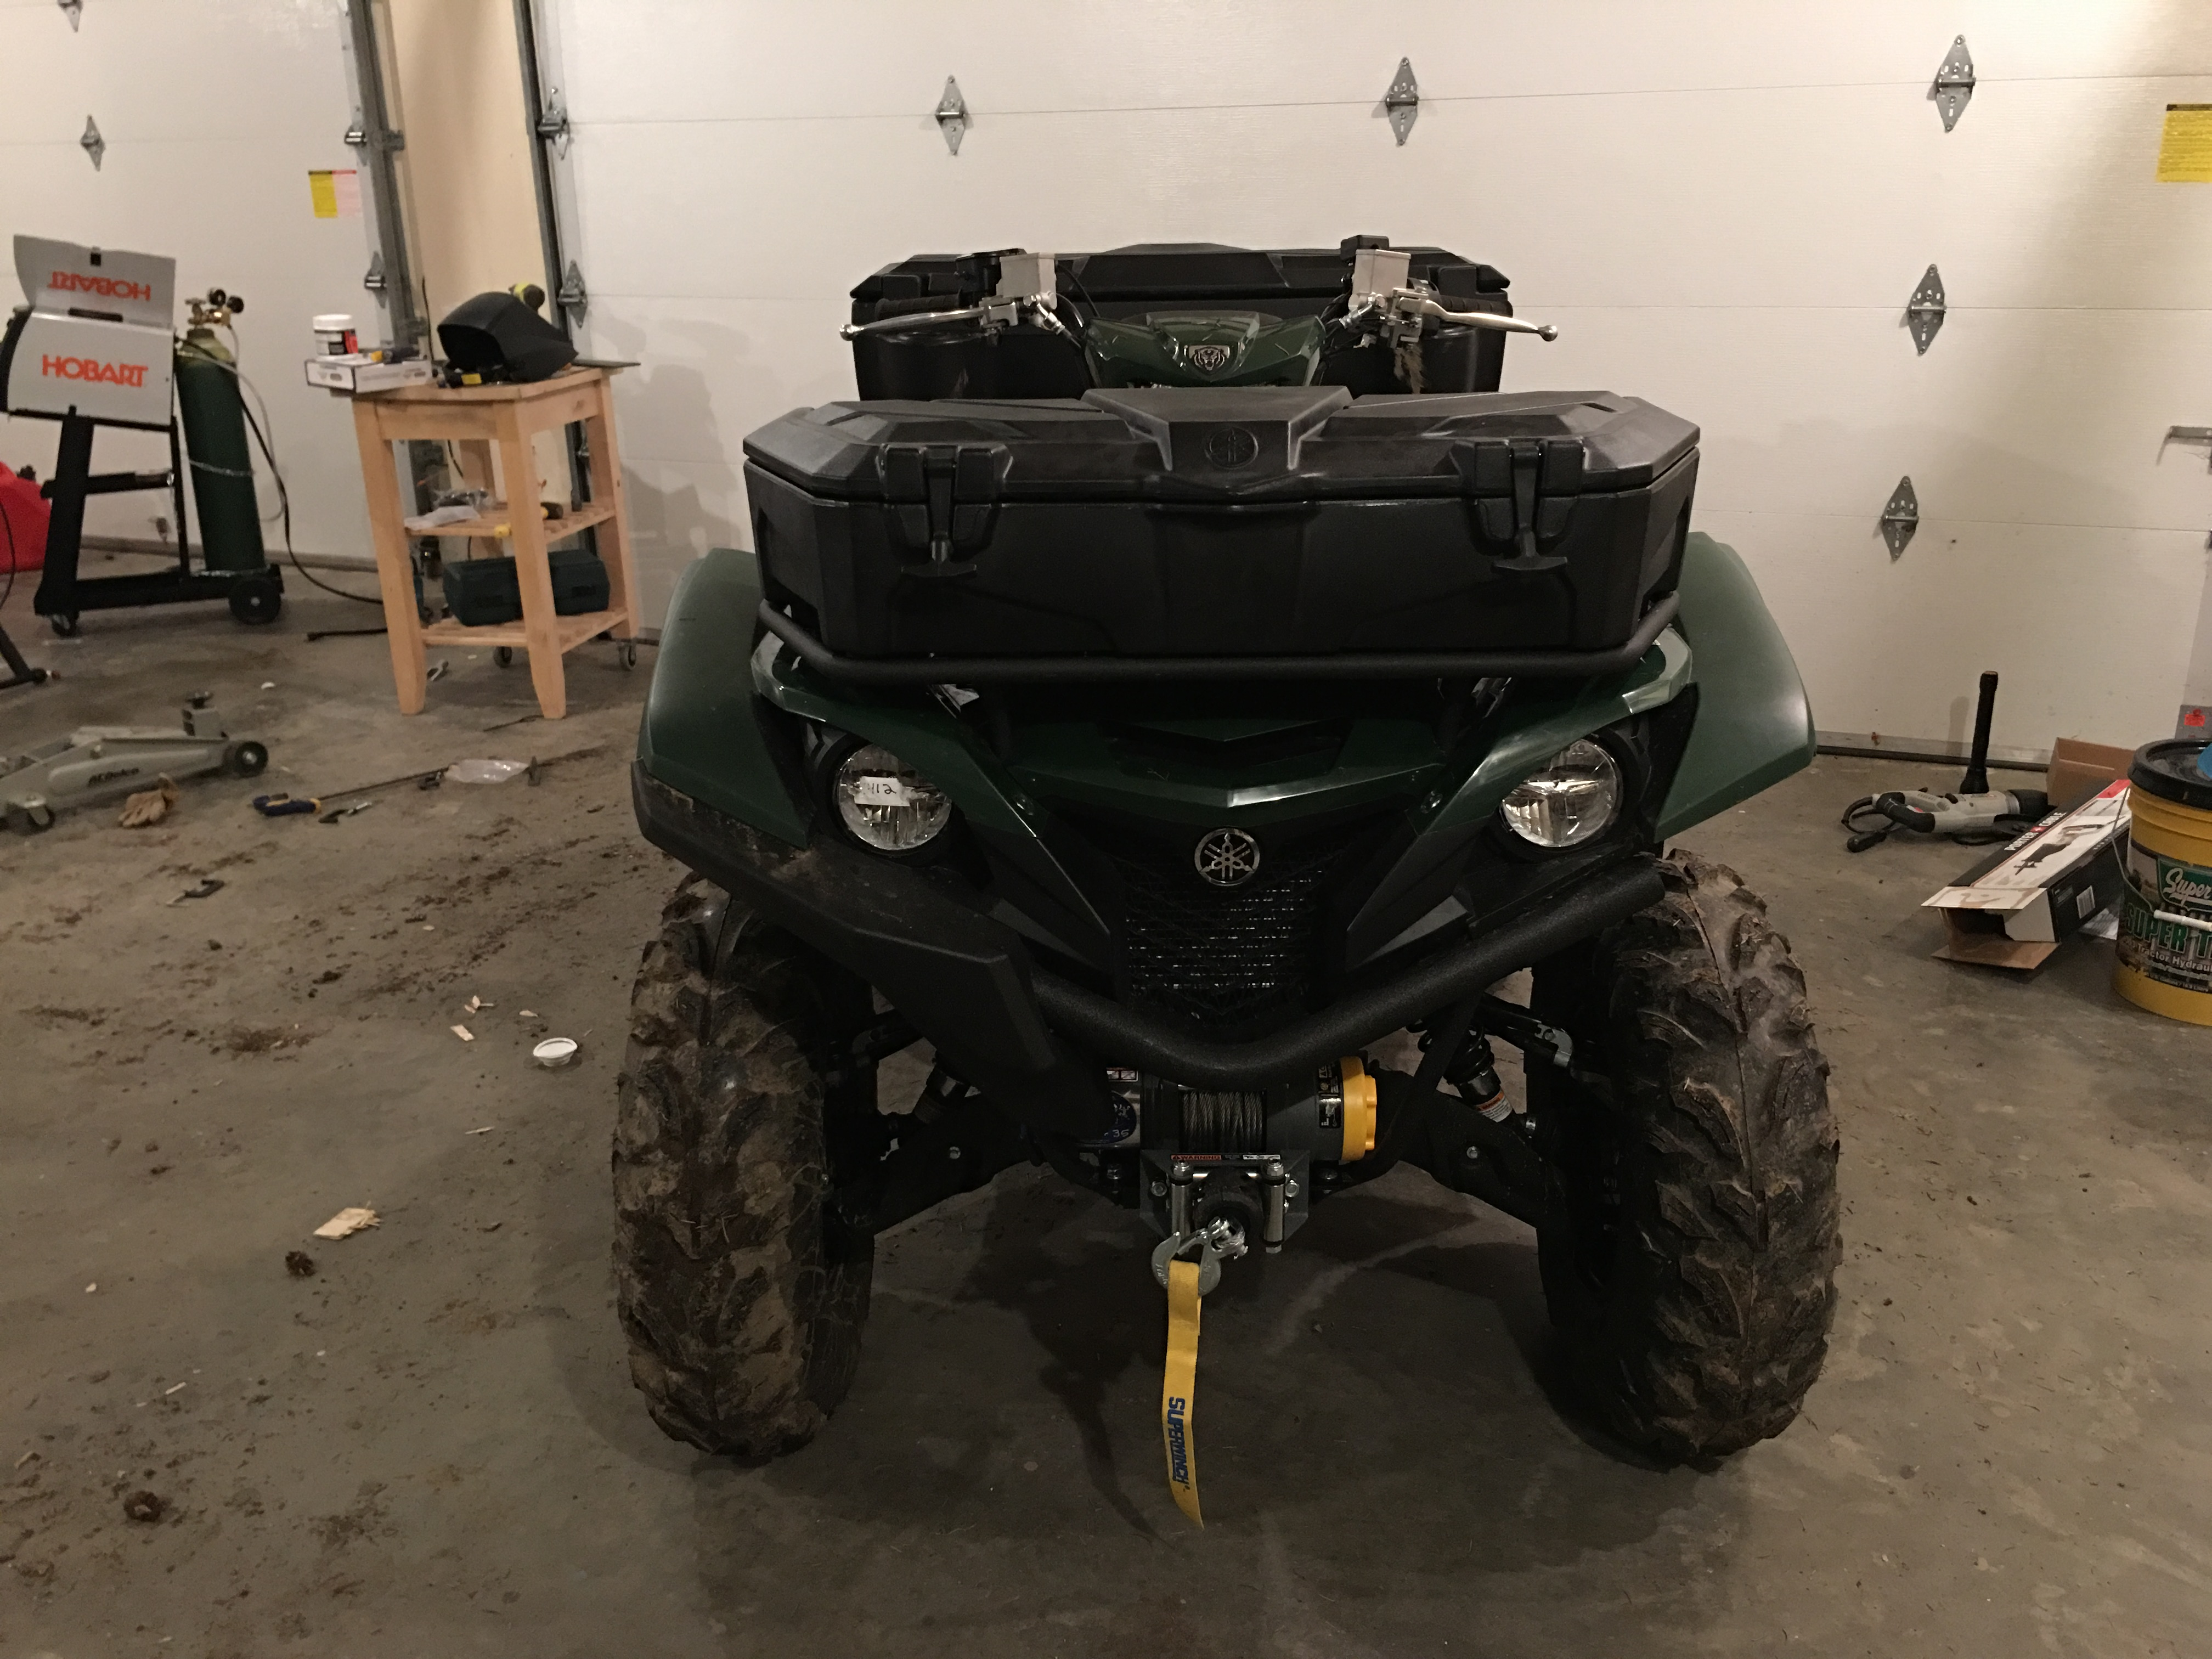 2017 Yamaha Grizzly >> Pics of front and rear factory cargo boxes for 2016 and up model - Yamaha Grizzly ATV Forum